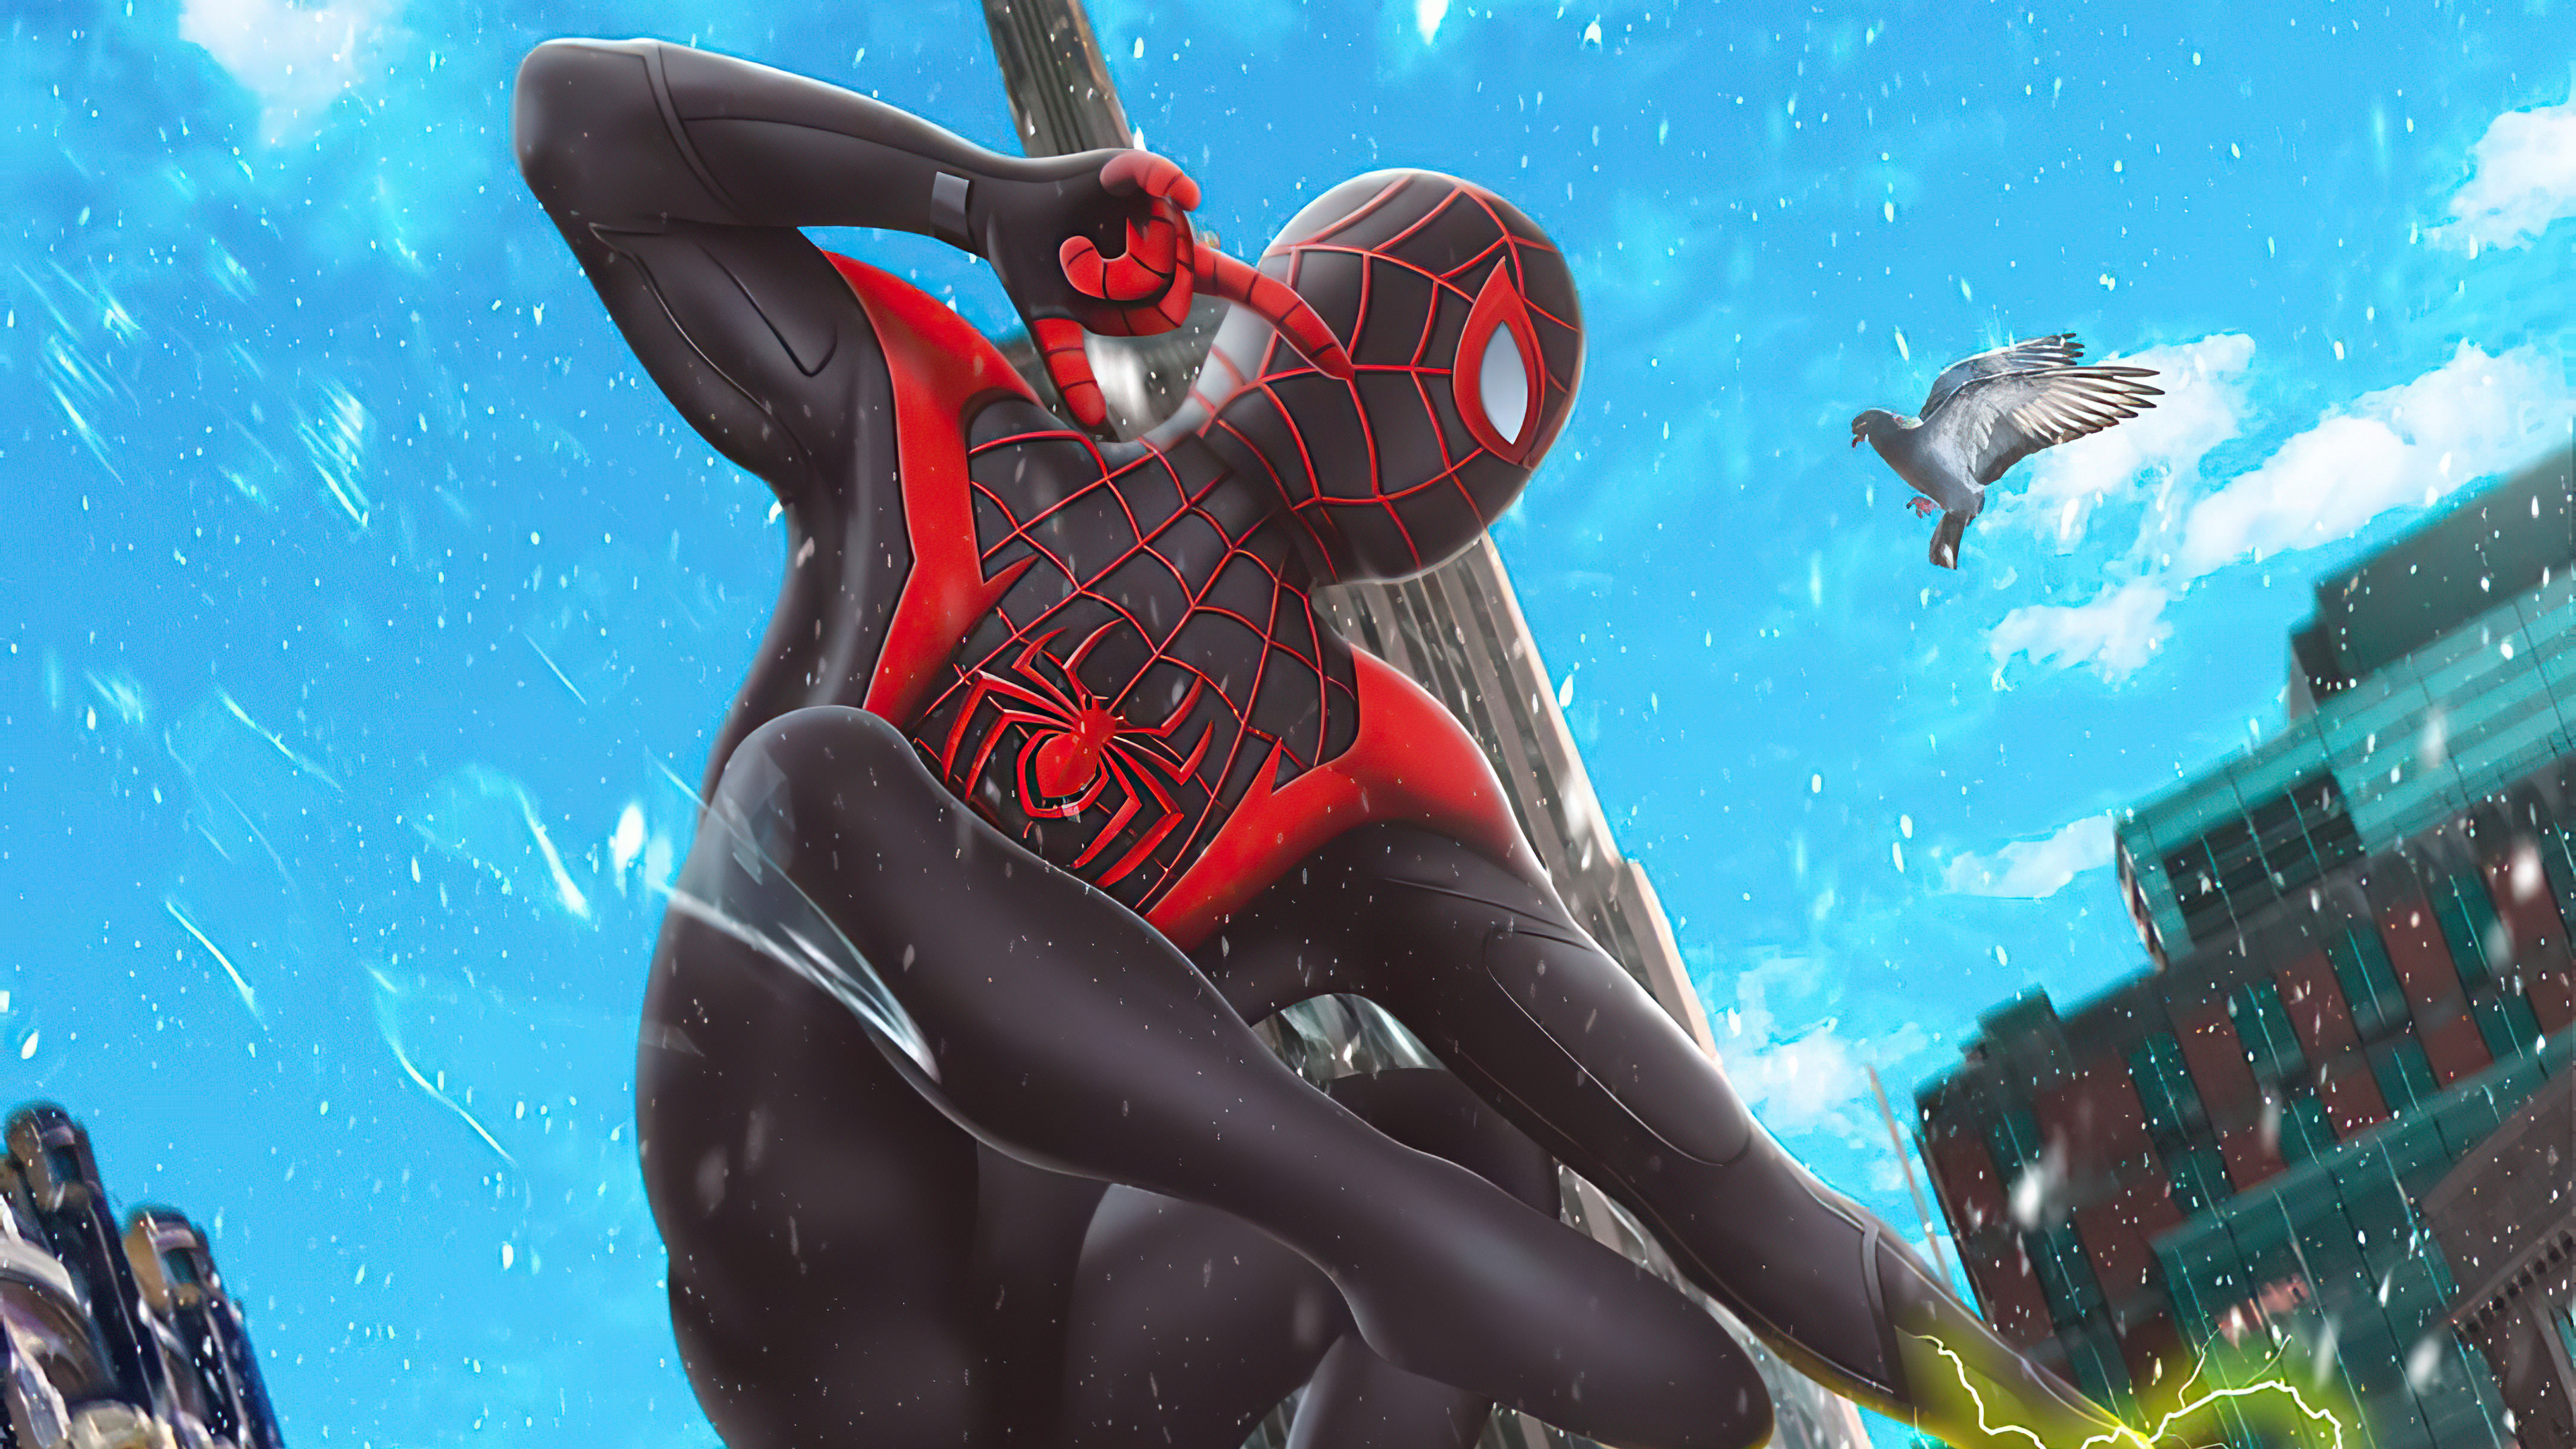 Wallpaper Miles Morales as Spiderman with black suit